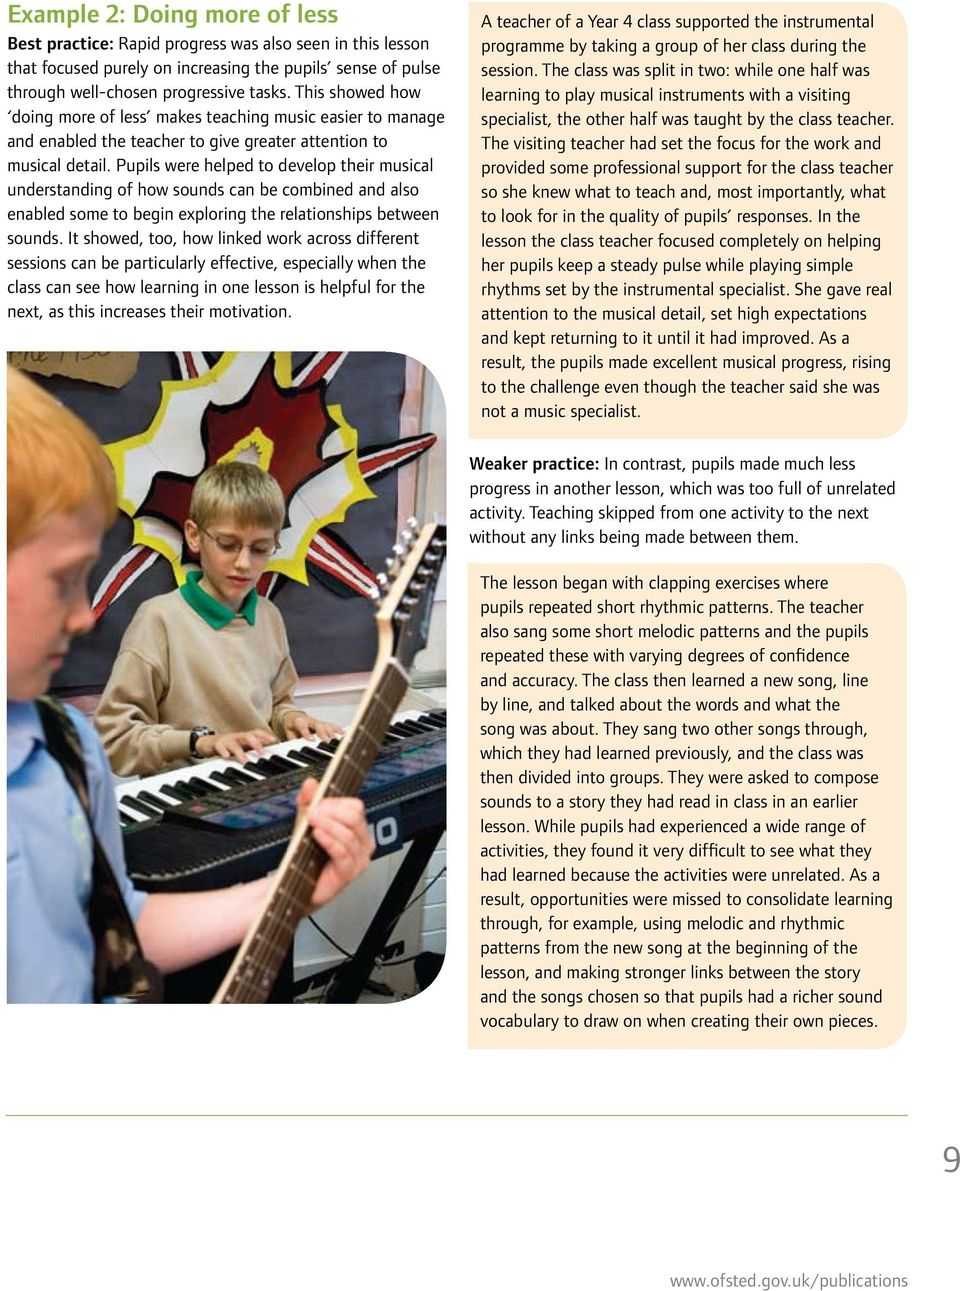 Pupils were helped to develop their musical understanding of how sounds can be combined and also enabled some to begin exploring the relationships between sounds.